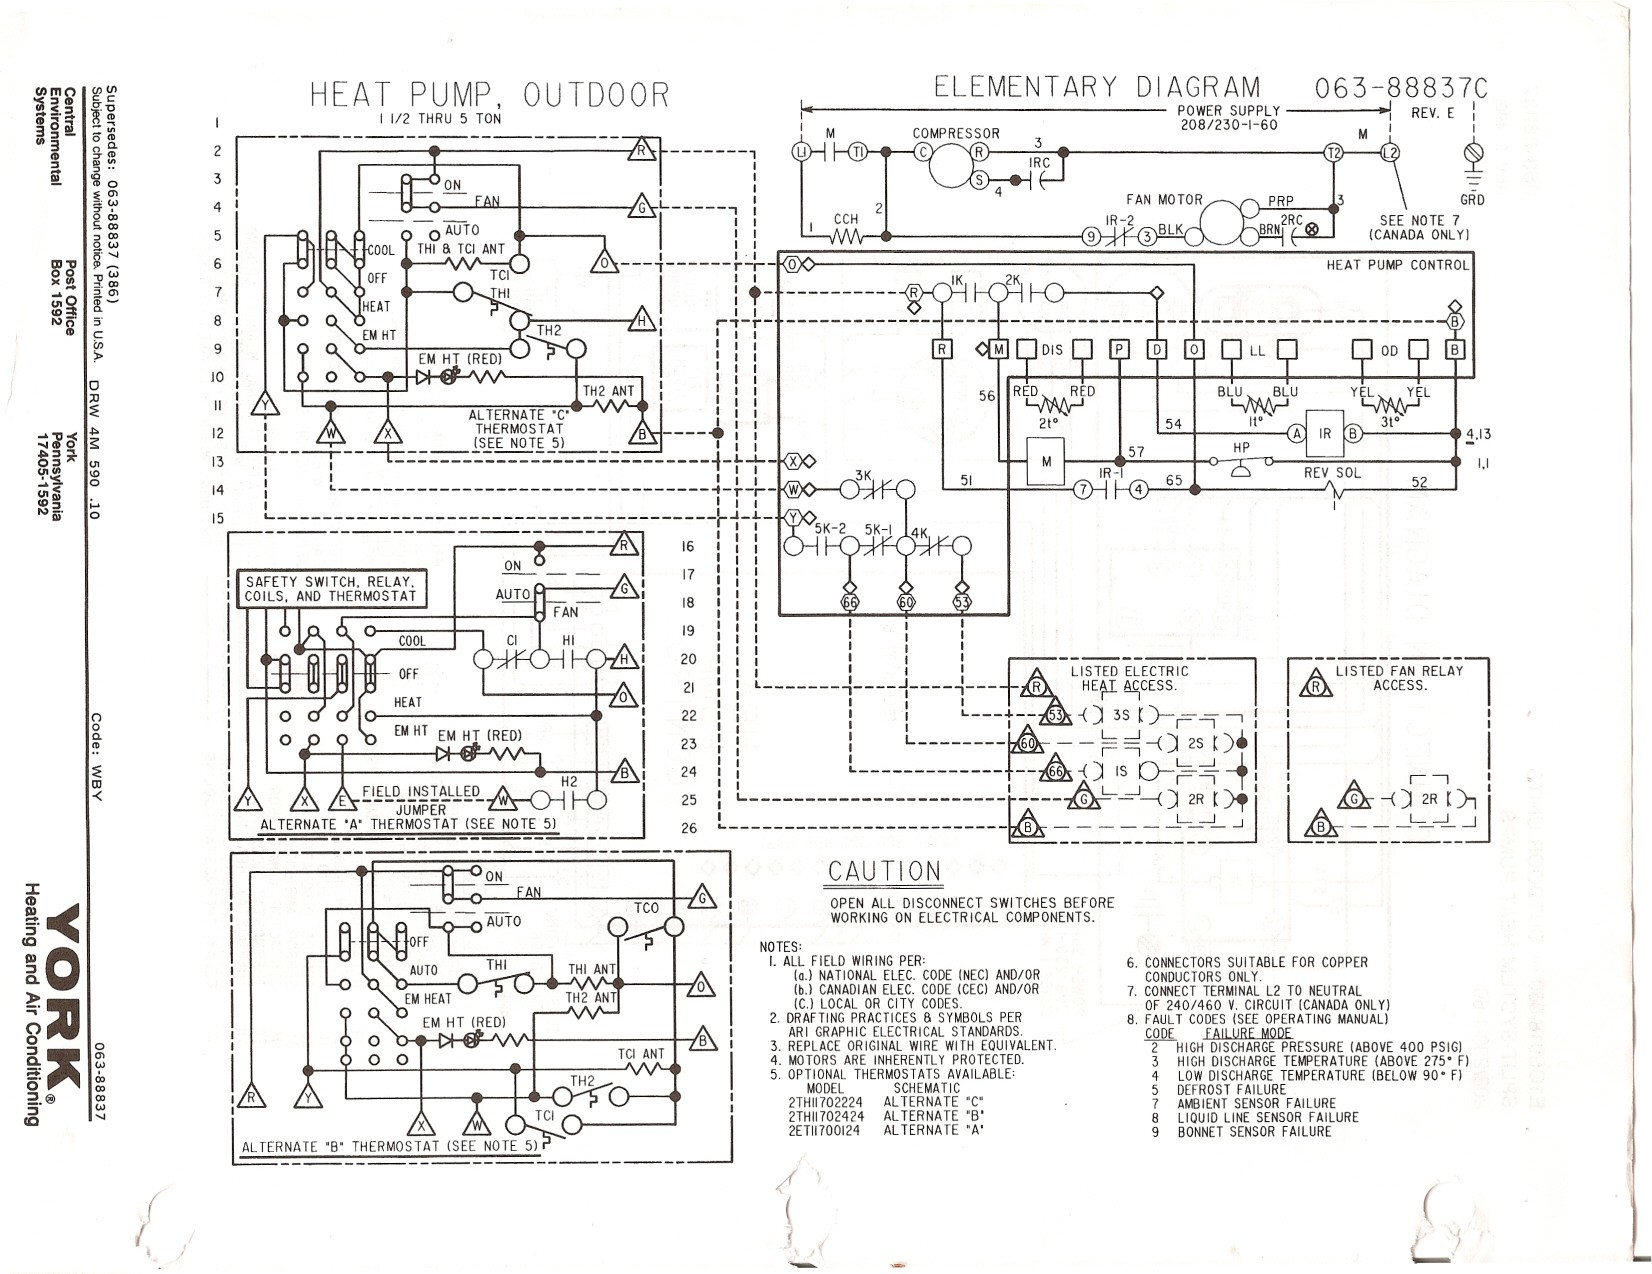 Carrier Electric Furnace Wiring Diagram from mainetreasurechest.com